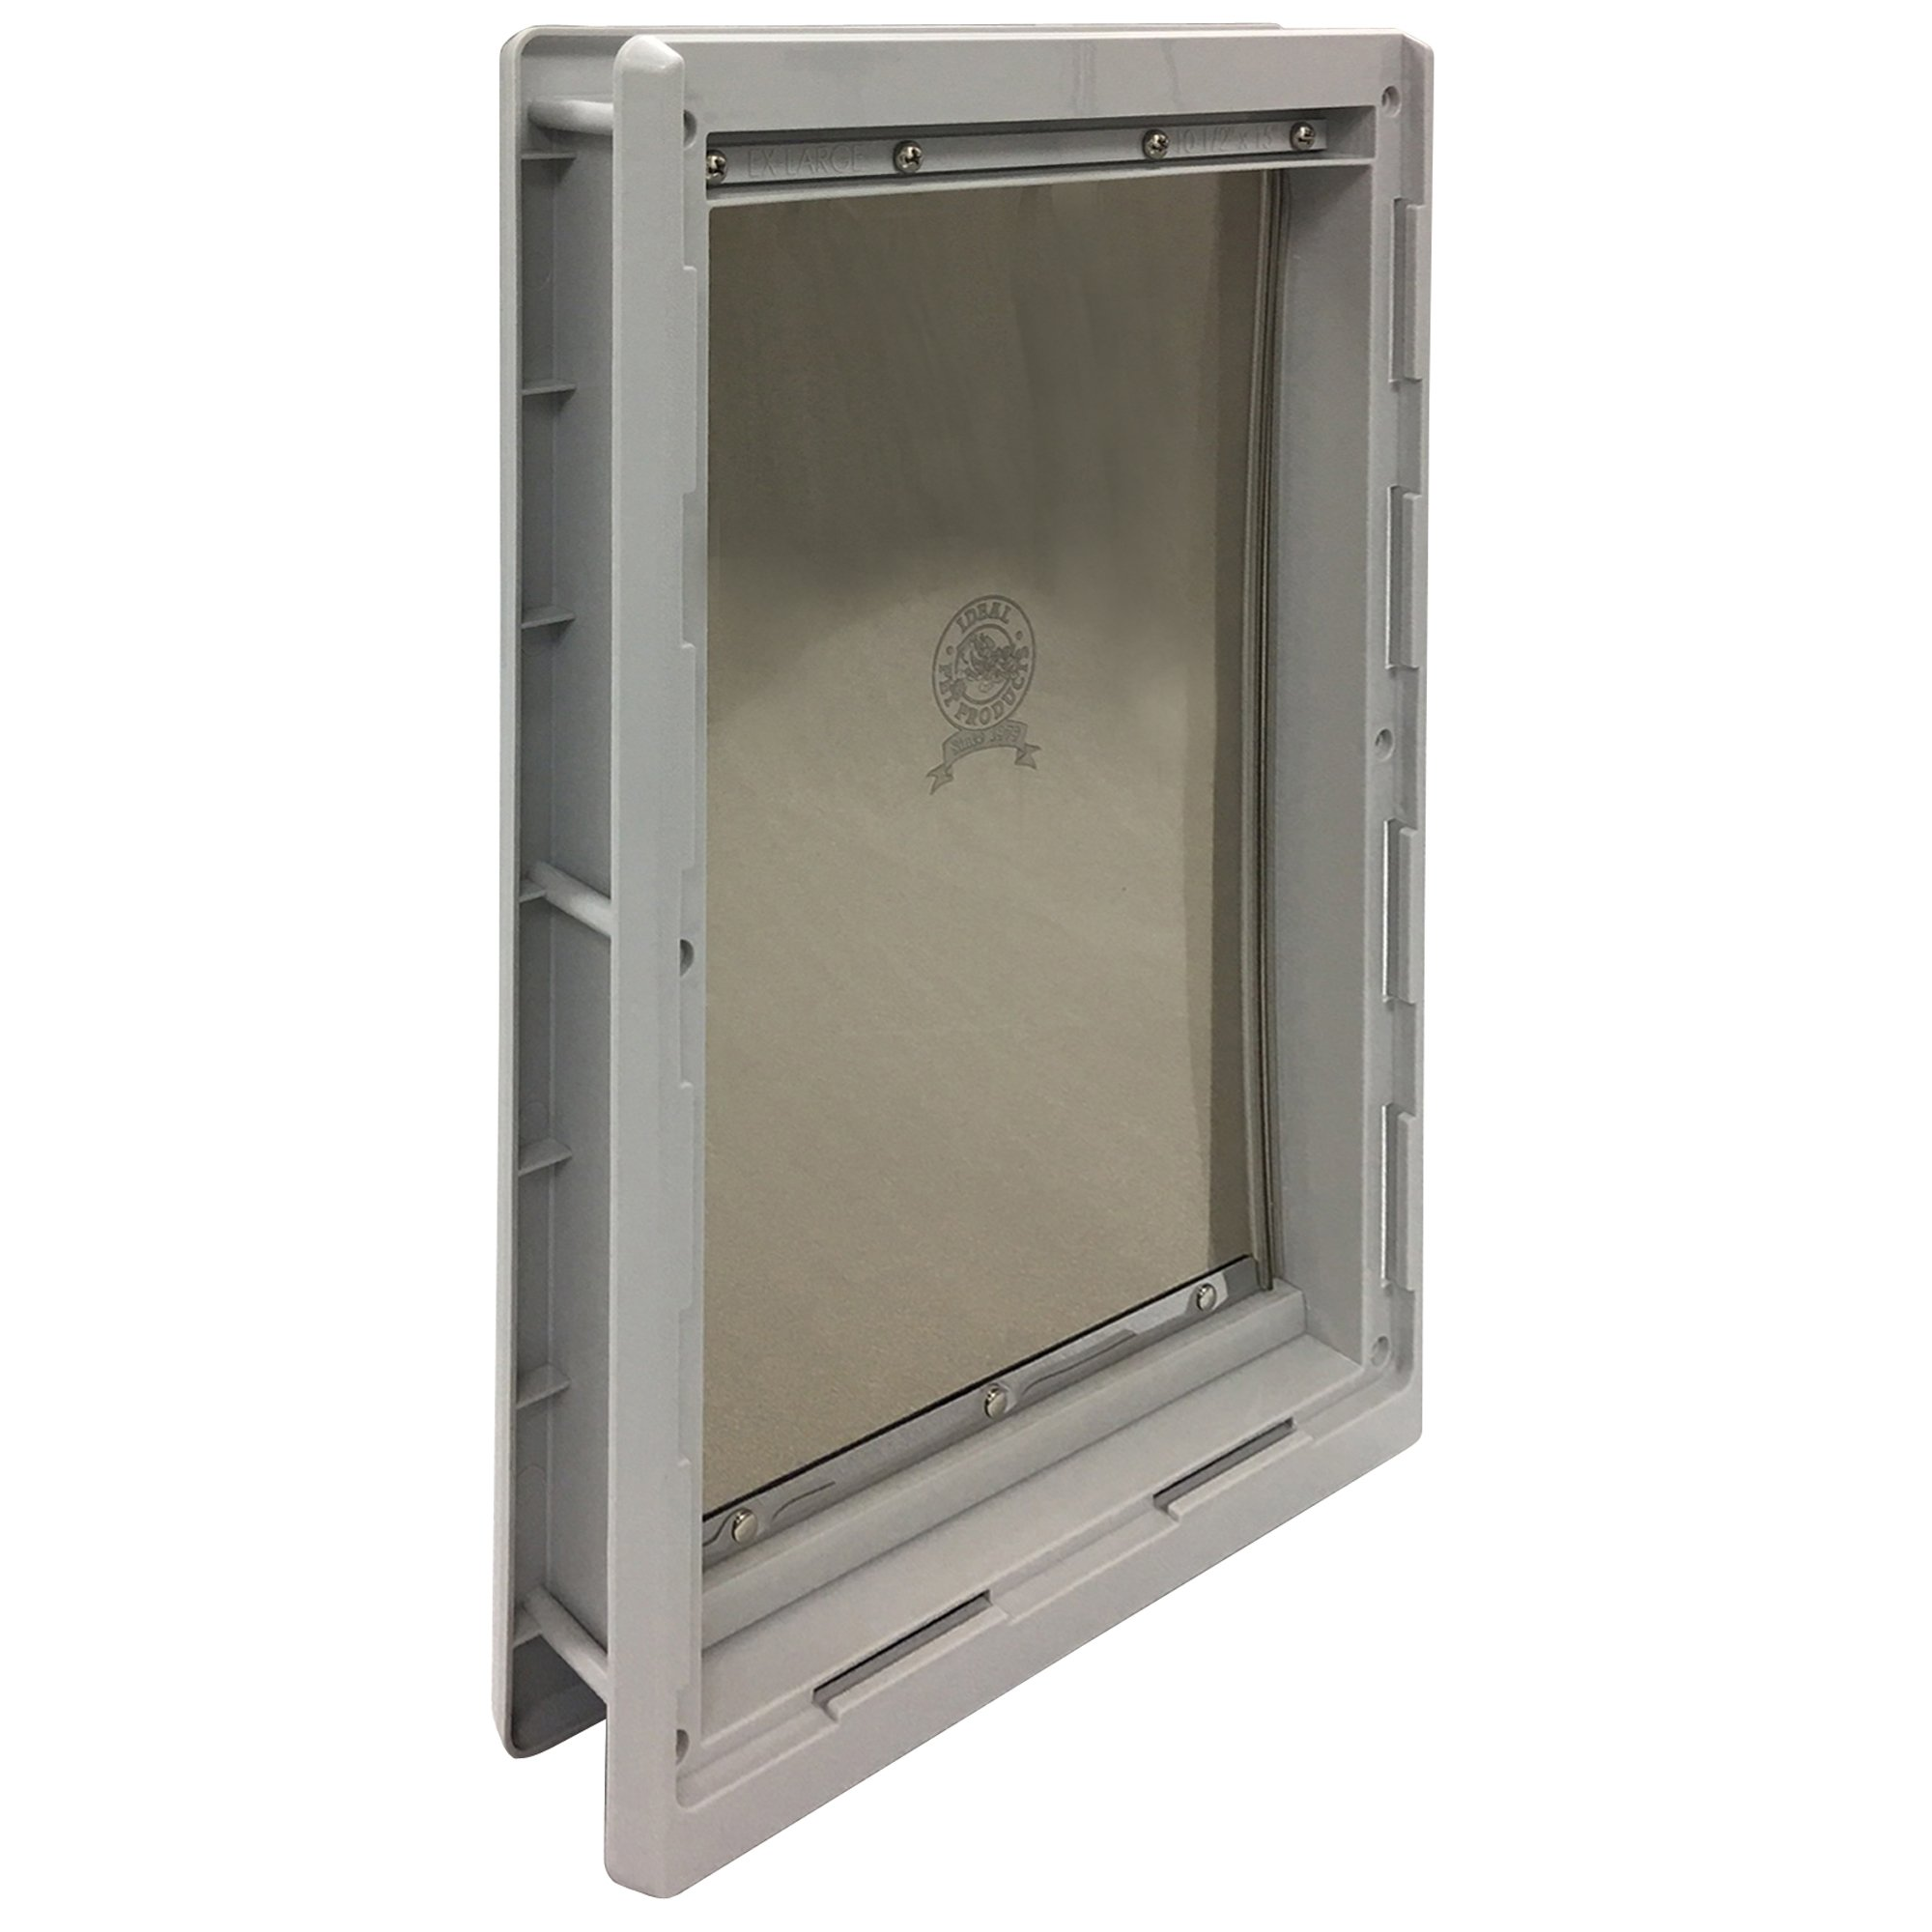 Ideal Pet Products Designer Series Plastic Pet Door with Telescoping Frame, Extra-Large, 10.5'' x 15'' Flap Size by Ideal Pet Products